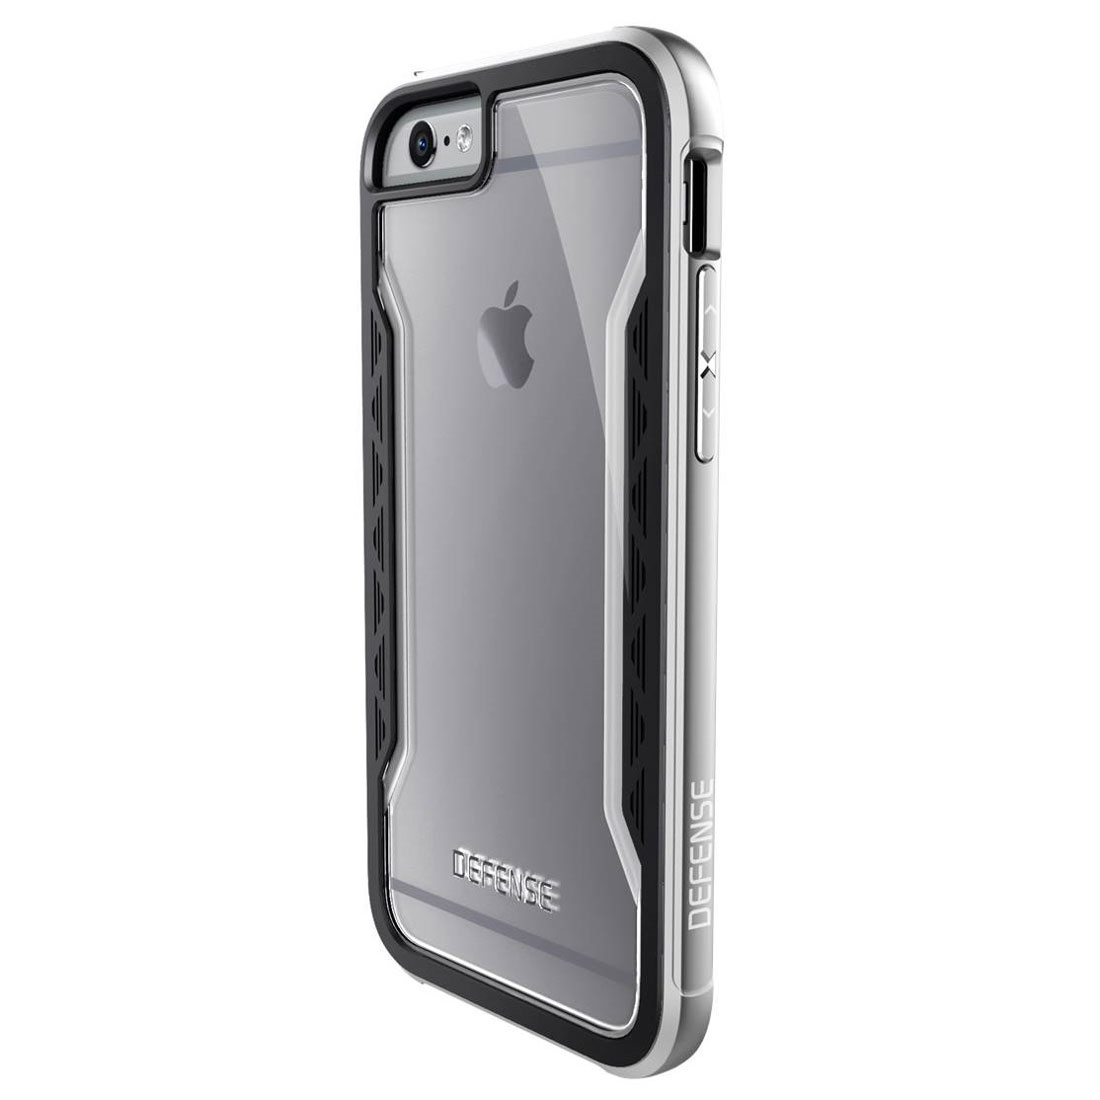 x doria coque de protection defense shield argent iphone 6. Black Bedroom Furniture Sets. Home Design Ideas